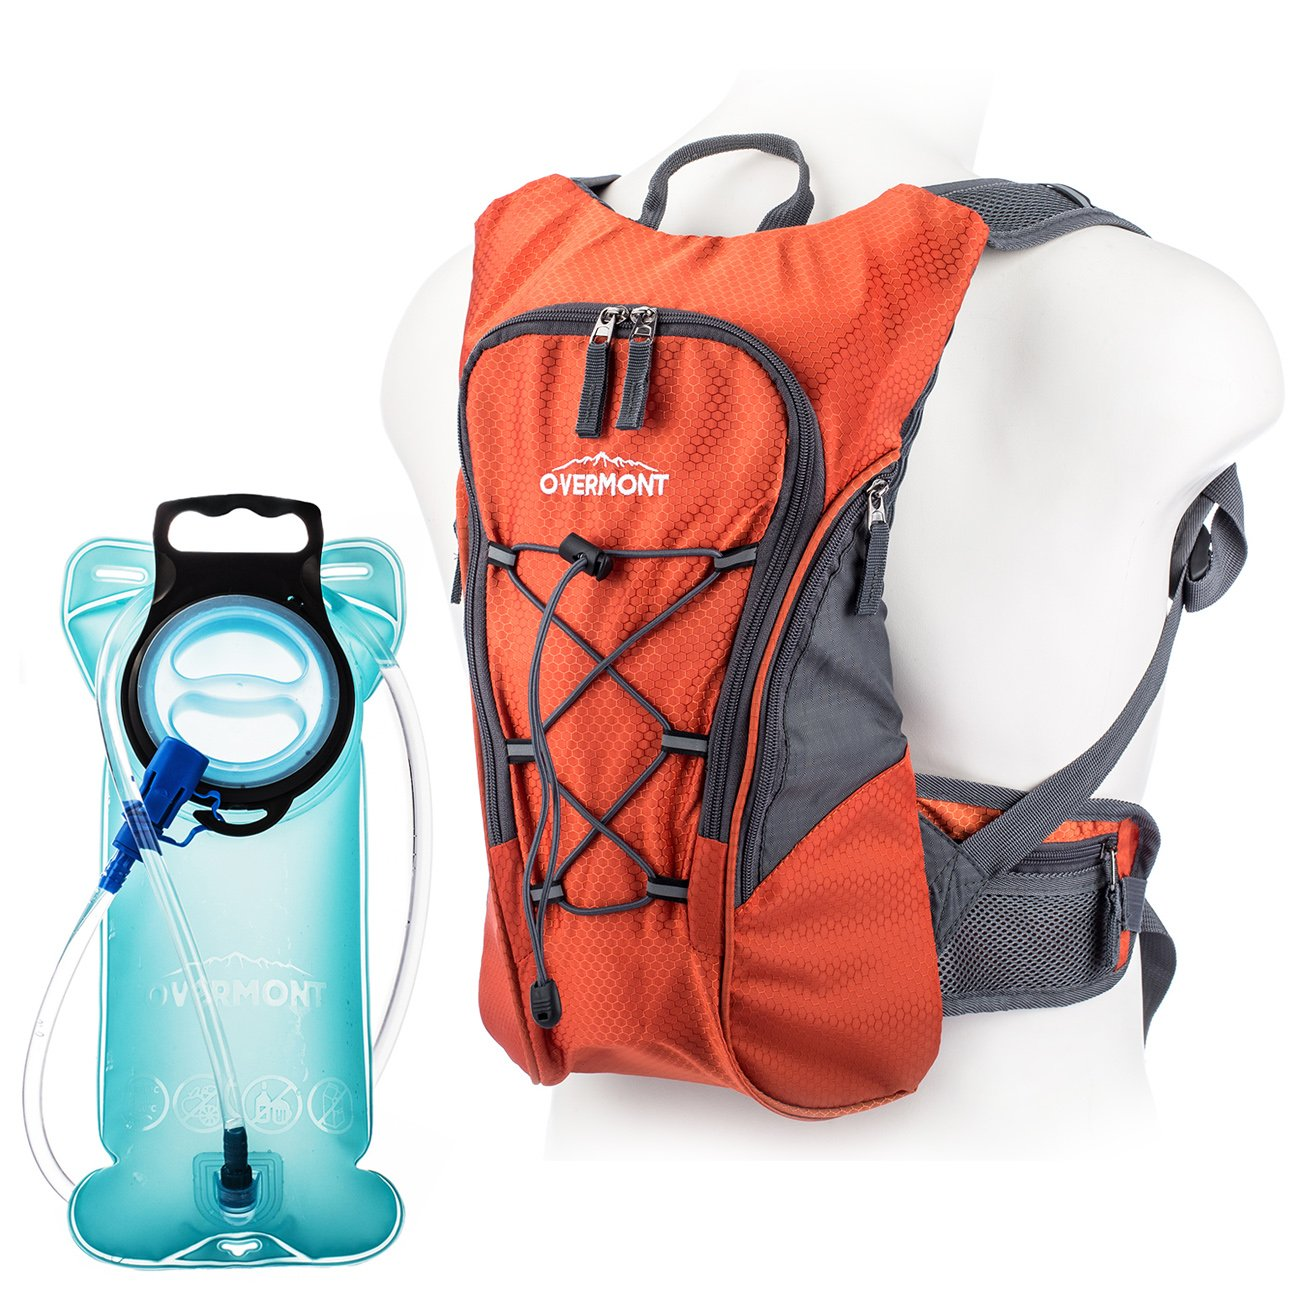 Overmont Hiking Backpack Camping Gear for Containing a Hydrating Bladder 2.5 liters Backpack cyclist(total capacity 10L) for Outdoor Sports Long Voyage Climbing with 2L TPU Hydration Bladder OM-Waterbag(Org)